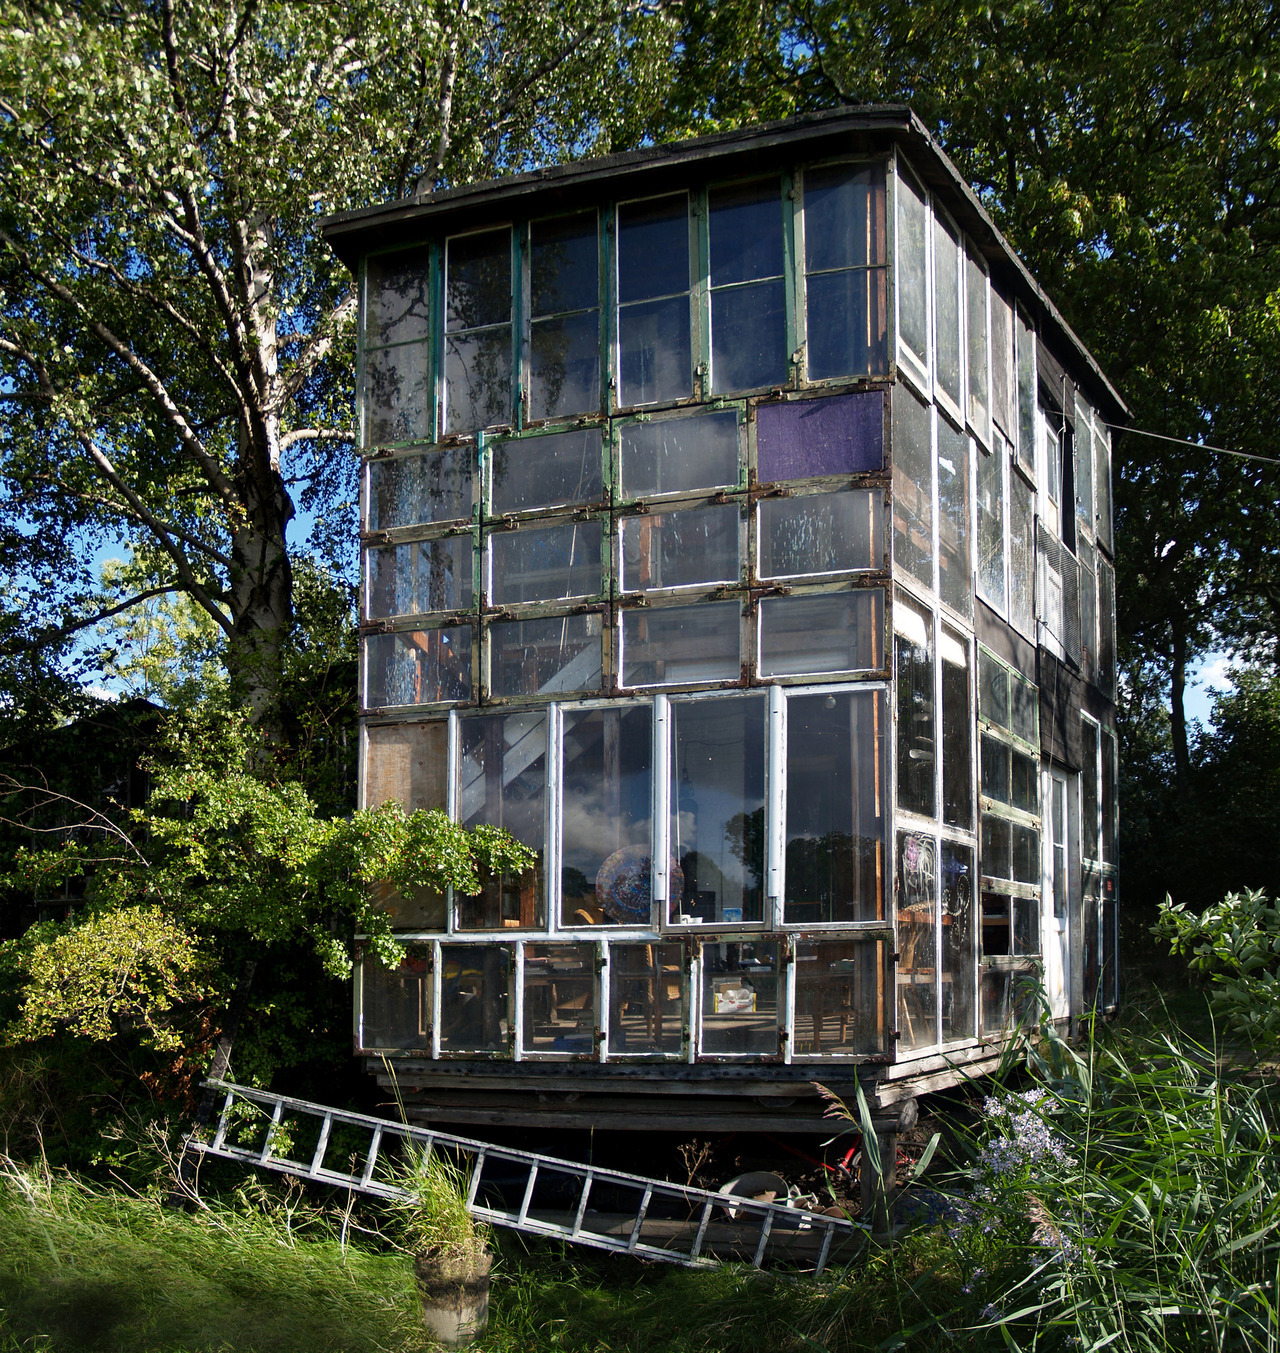 cabinporn:  A salvaged window house in Christiania, Denmark. From Tiny House Blog:  A town within a city, a rebel neighborhood within a well-ordered society. This is Christiania (Freetown), Denmark, a small community smack dab in the middle of Copenhagen, Denmark. Within this community are tiny houses, built by hand and with whatever materials are within reach. Christiania began in 1971 as an occupation of disused army barracks in the southern portion of Copenhagen near a lake. The 900 or so freethinking individuals who inhabit the area are a self governing community who refuse to pay taxes to the Danish government, run their own businesses and schools, live without cars on unpaved roads, build their own houses, restaurants and civil buildings and even have their own currency.